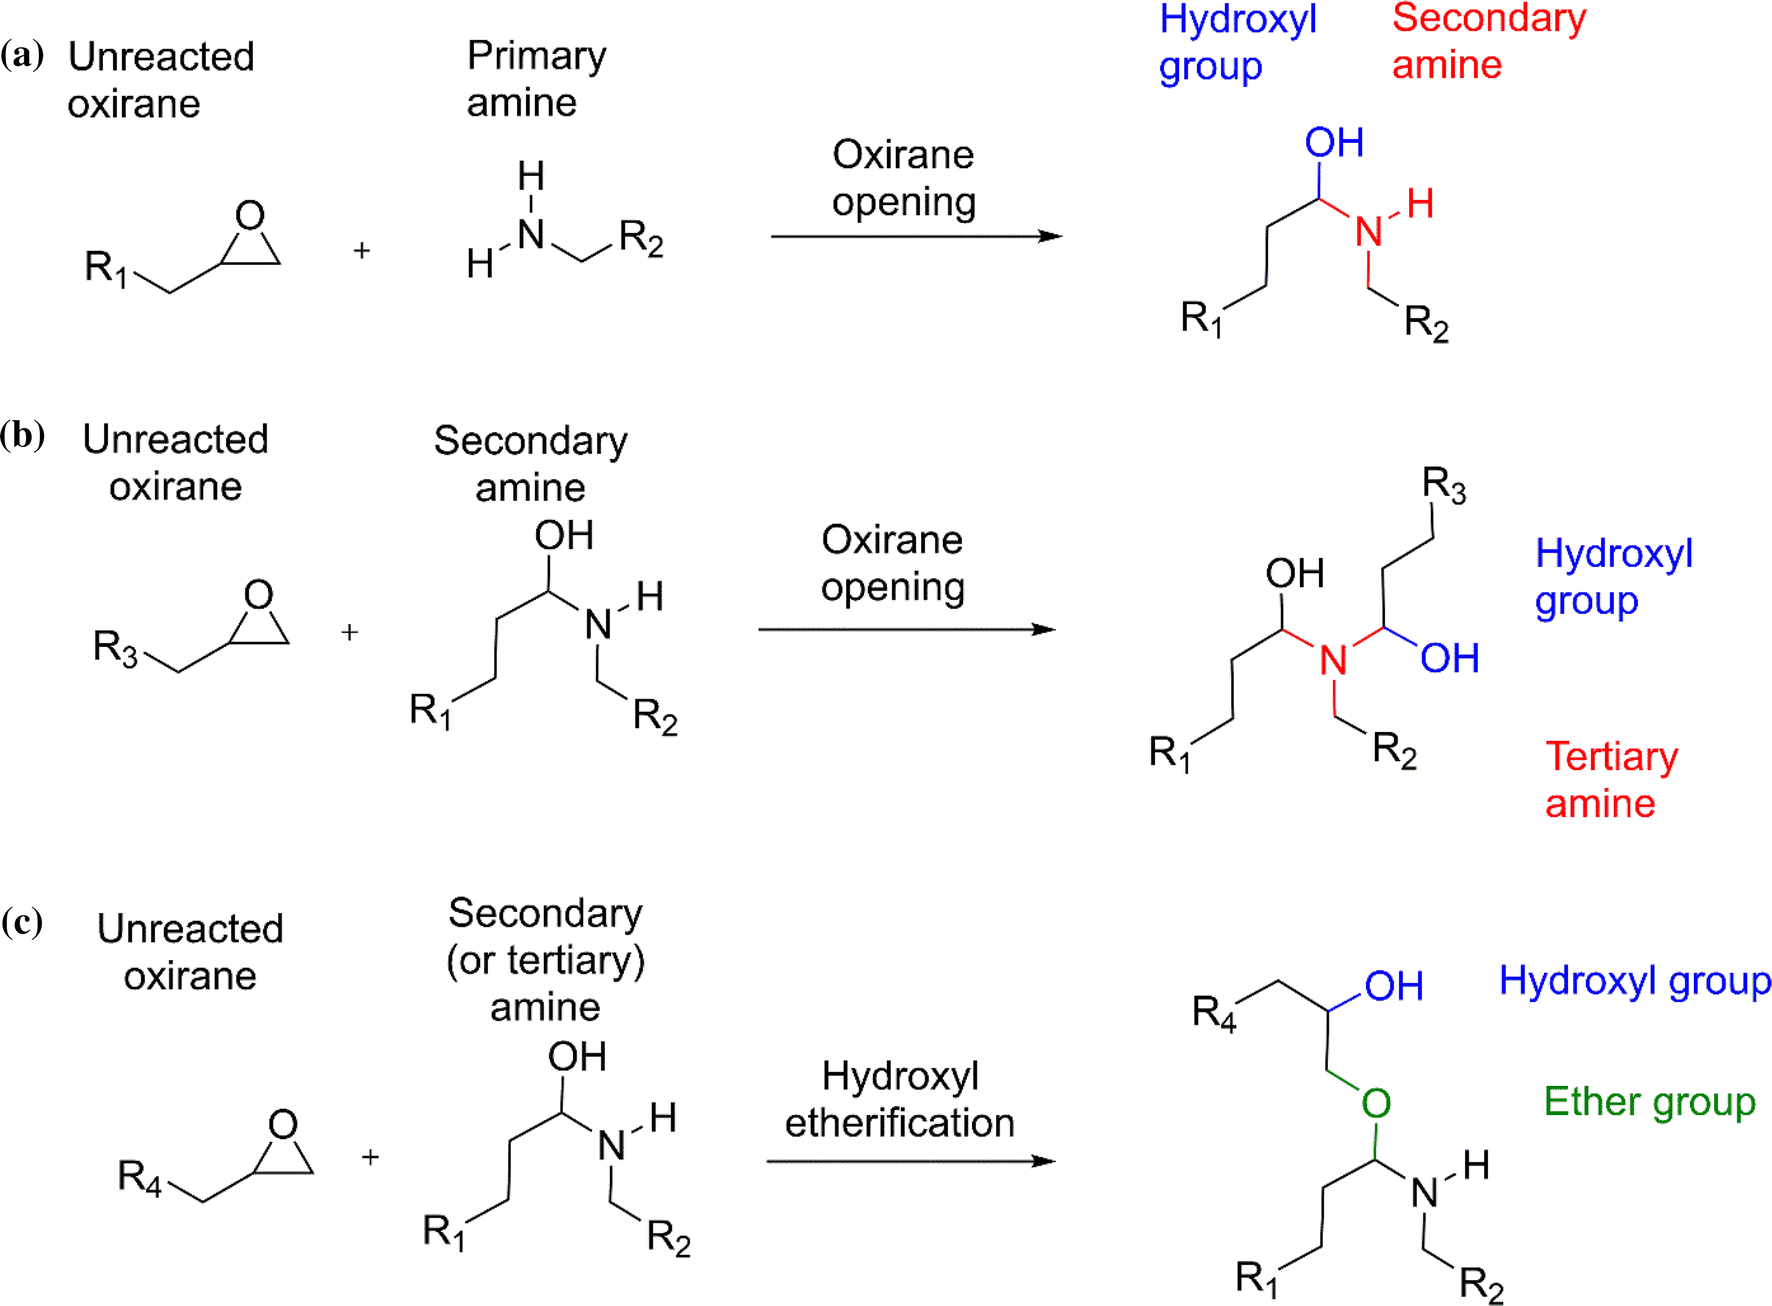 Understanding the cross-linking reactions in highly oxidized